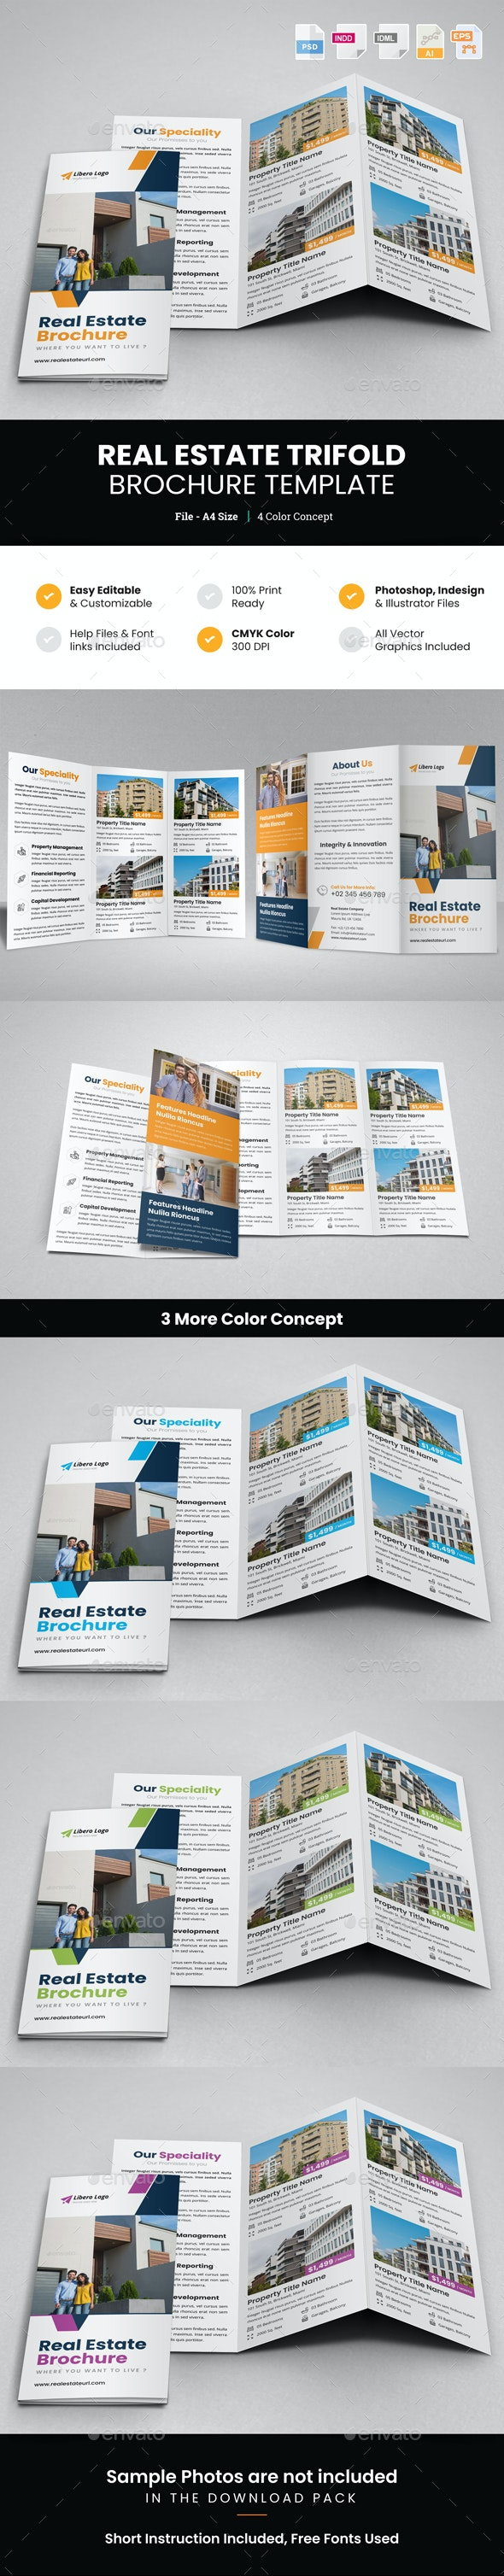 Real Estate Trifold Brochure v1 - Corporate Brochures